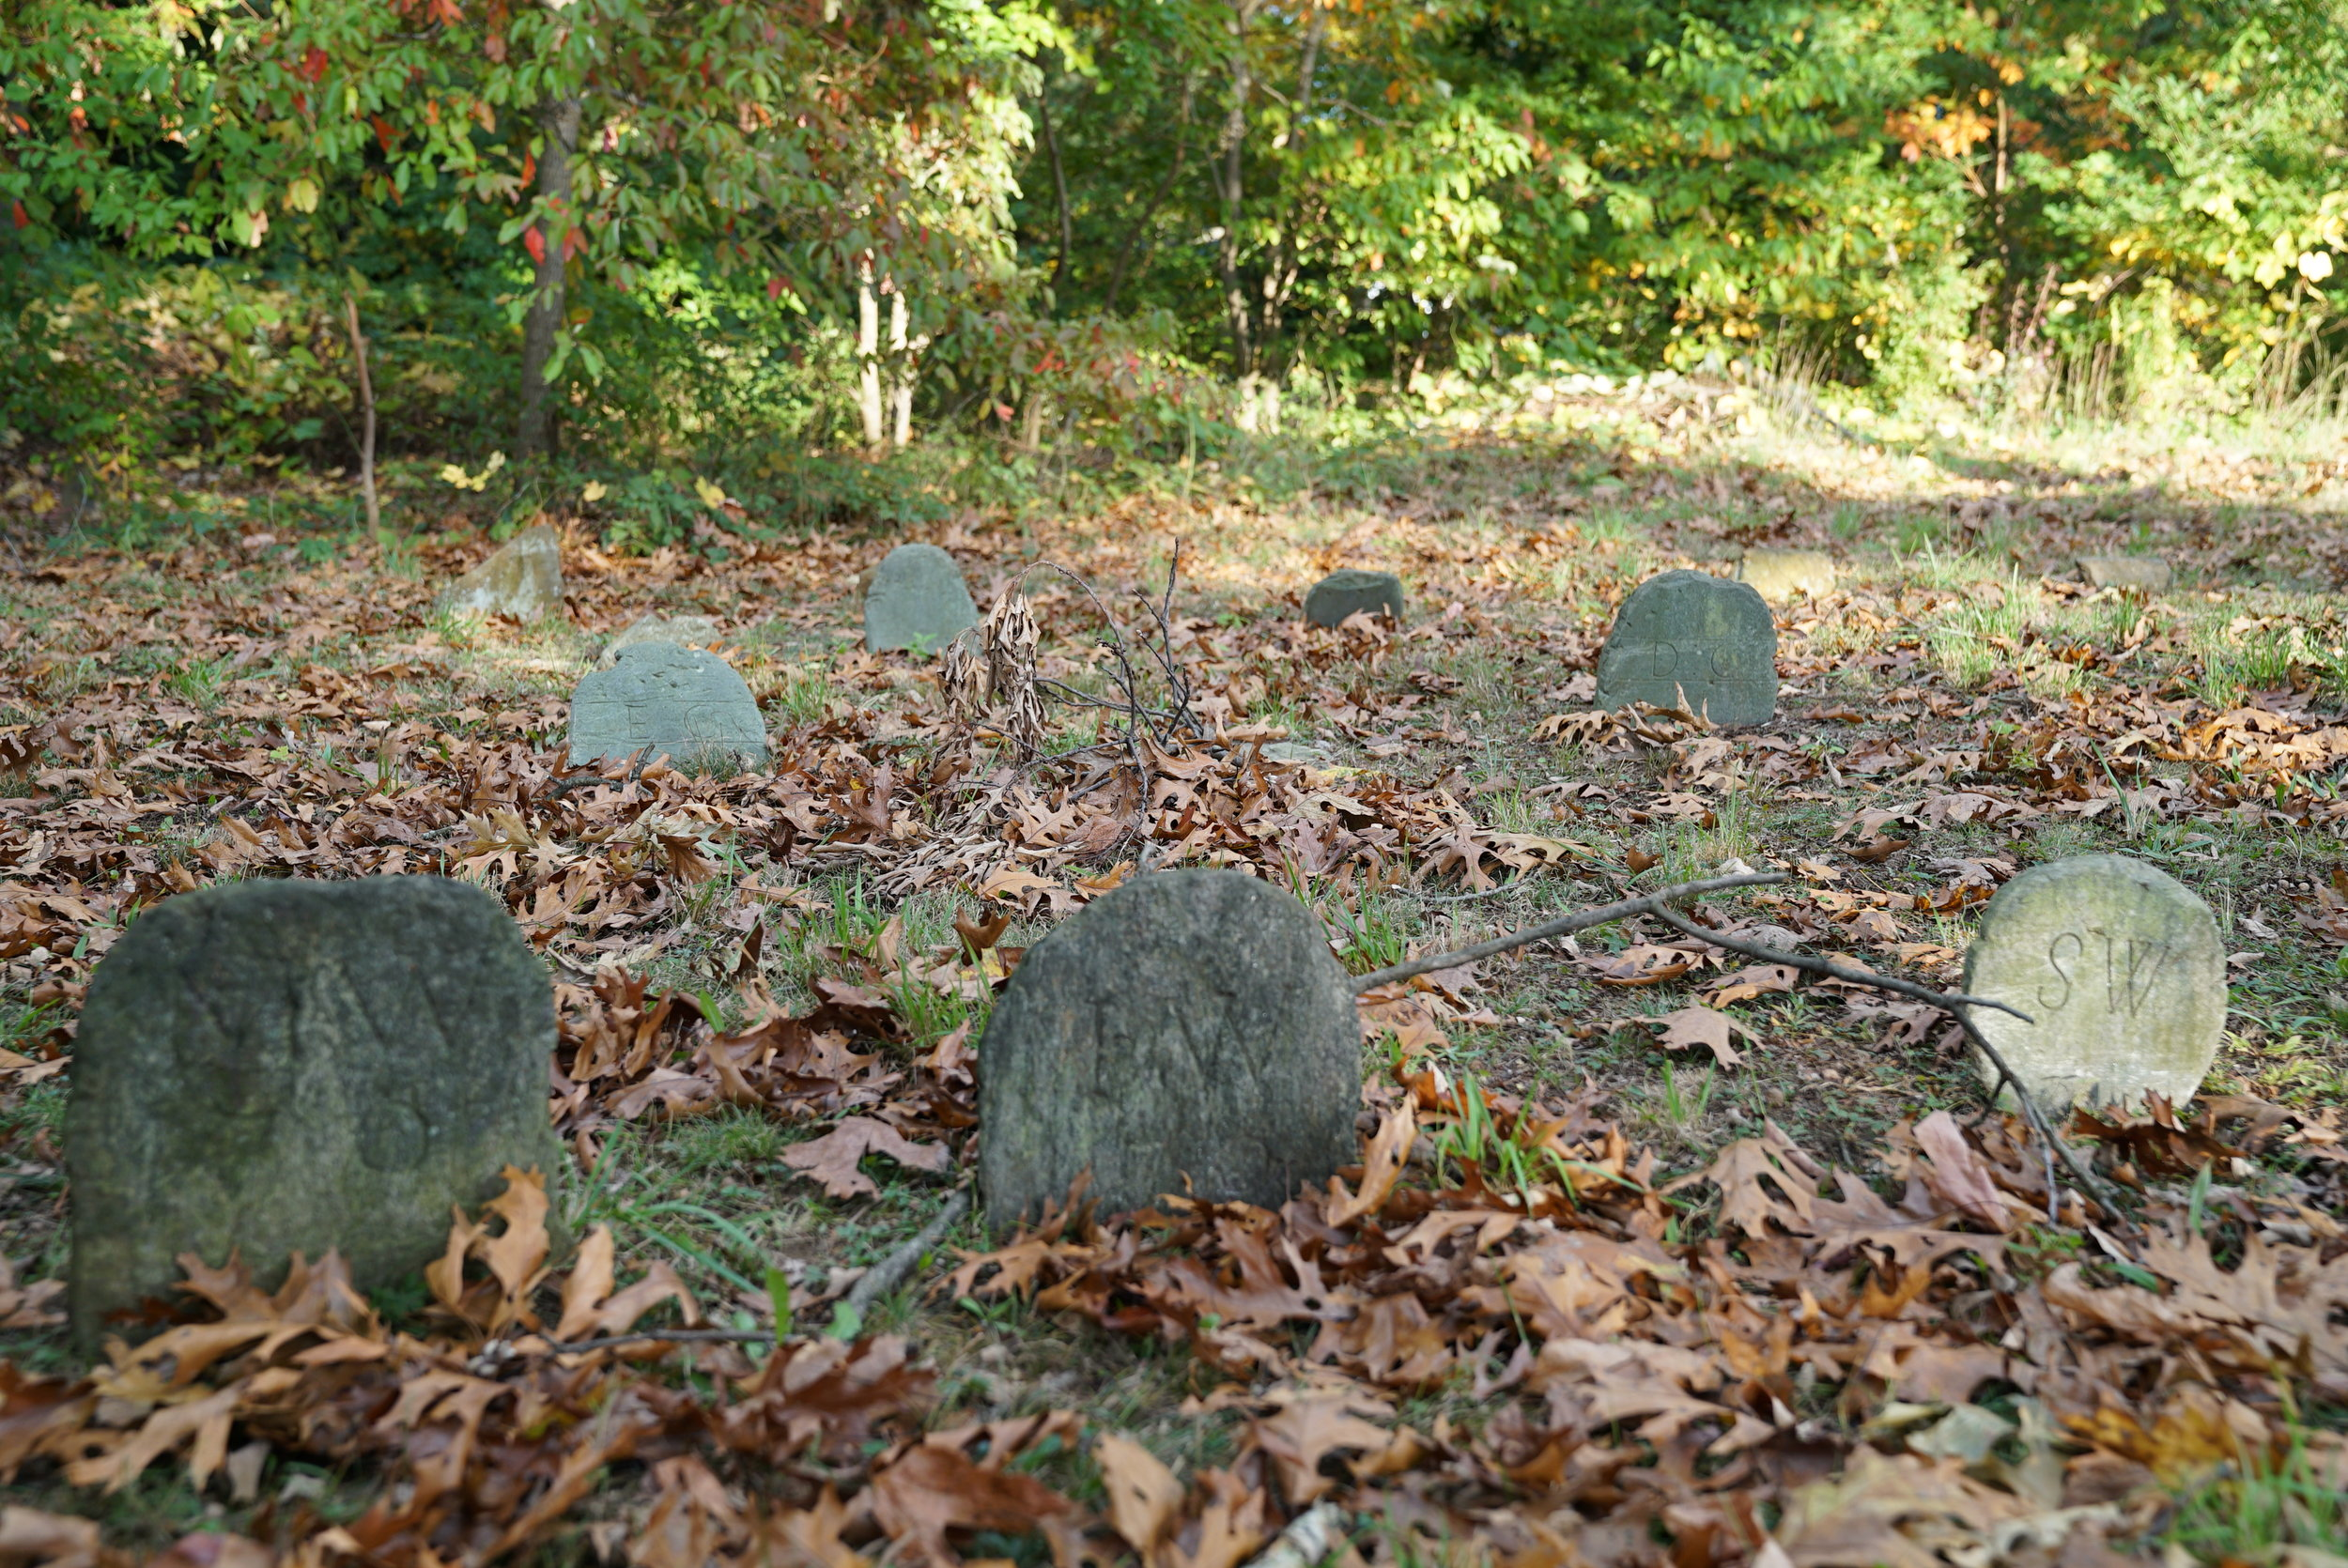 Most gravestones here are unreadable. The few that can be read have extremely minimal information. Sandy Bank Burial Ground. Media, Pennsylvania.